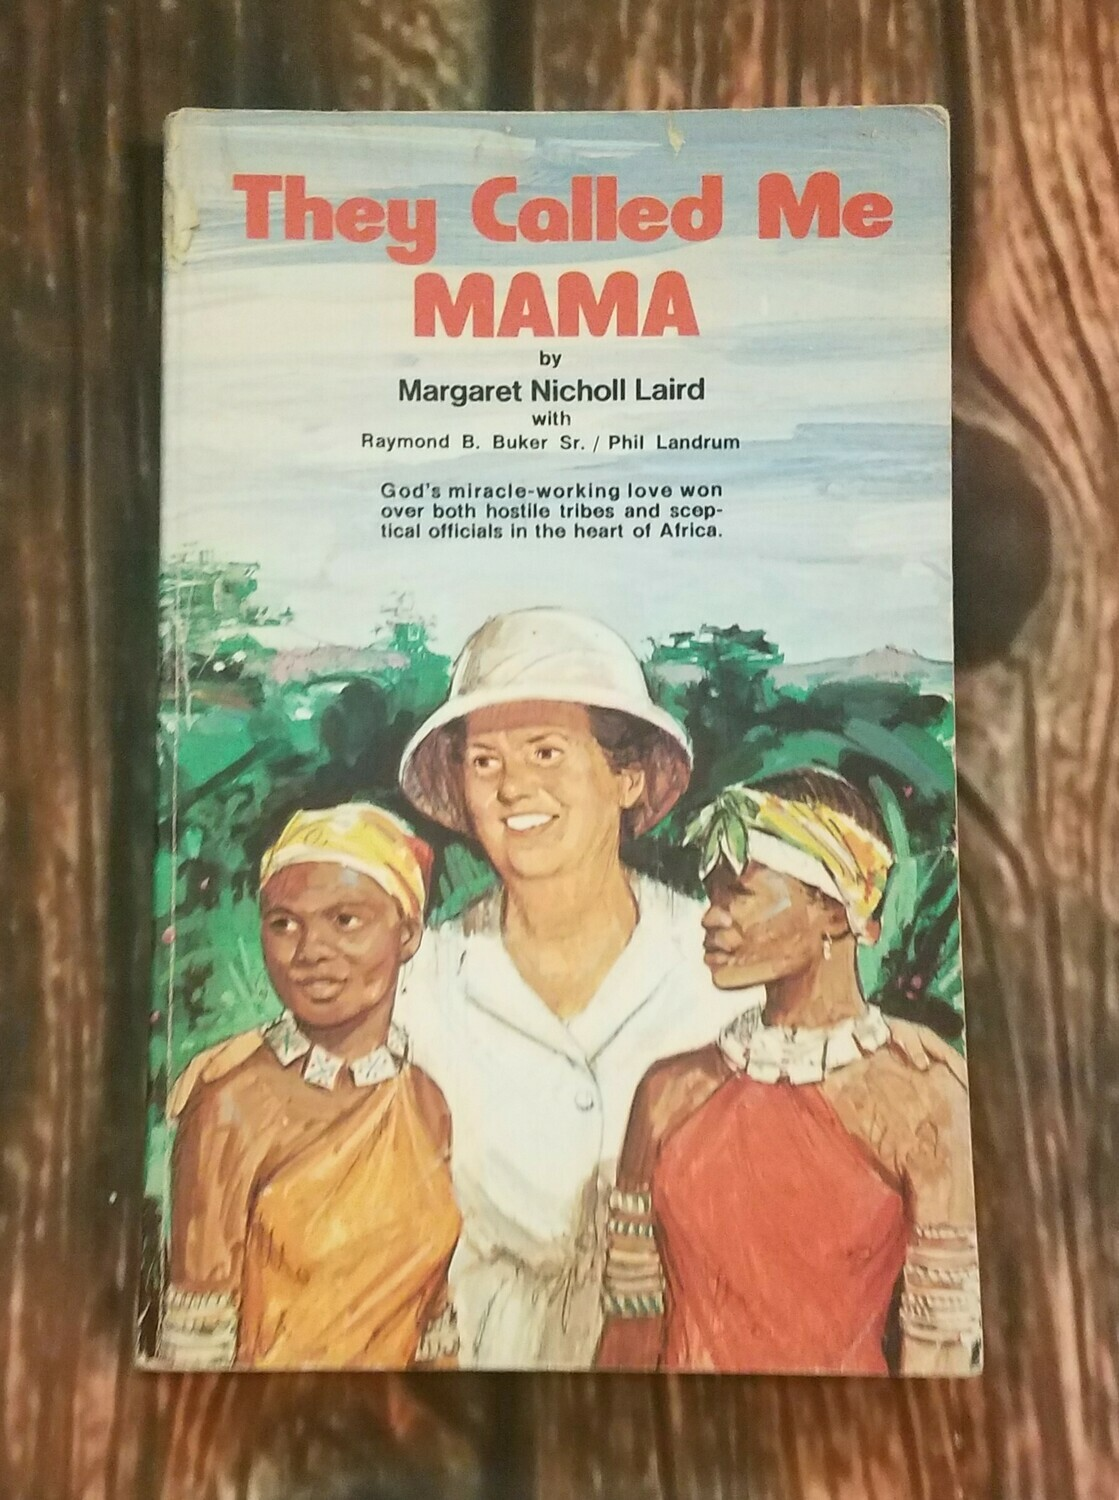 They Called me Mama by Margaret Nicholl Laird